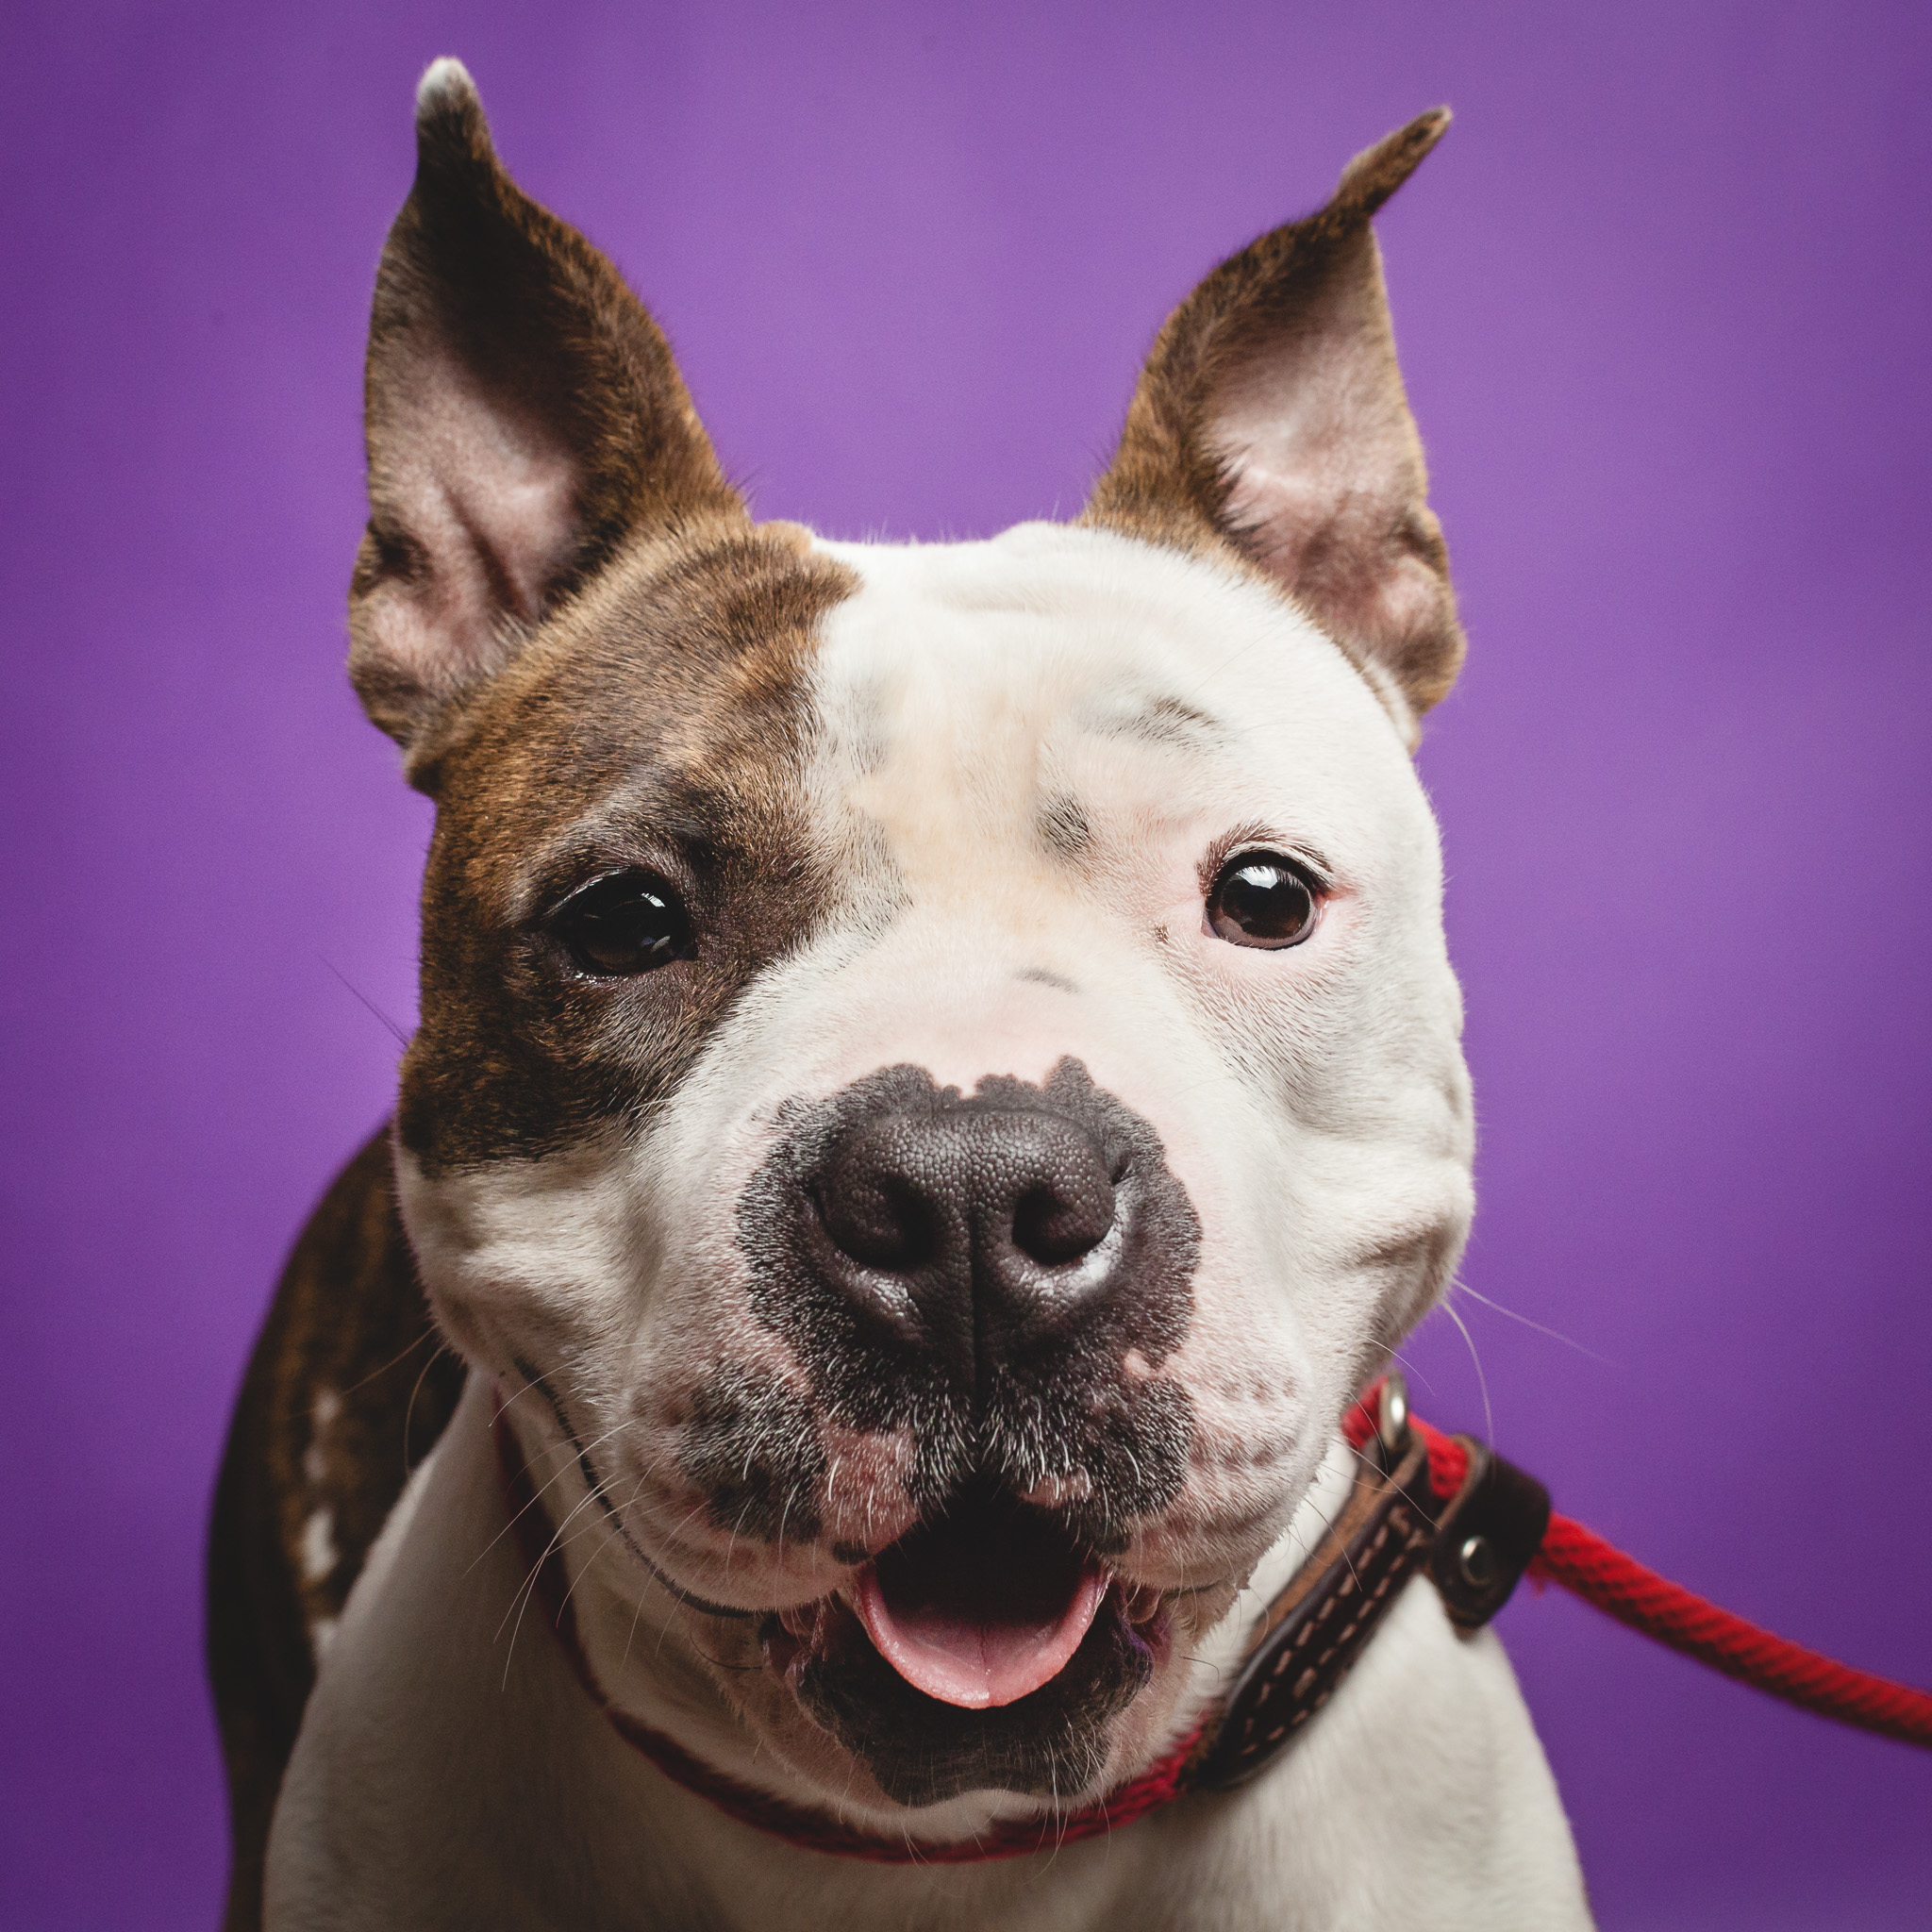 Pit Bull Terrier Mix, Chicago Animal Care and Control